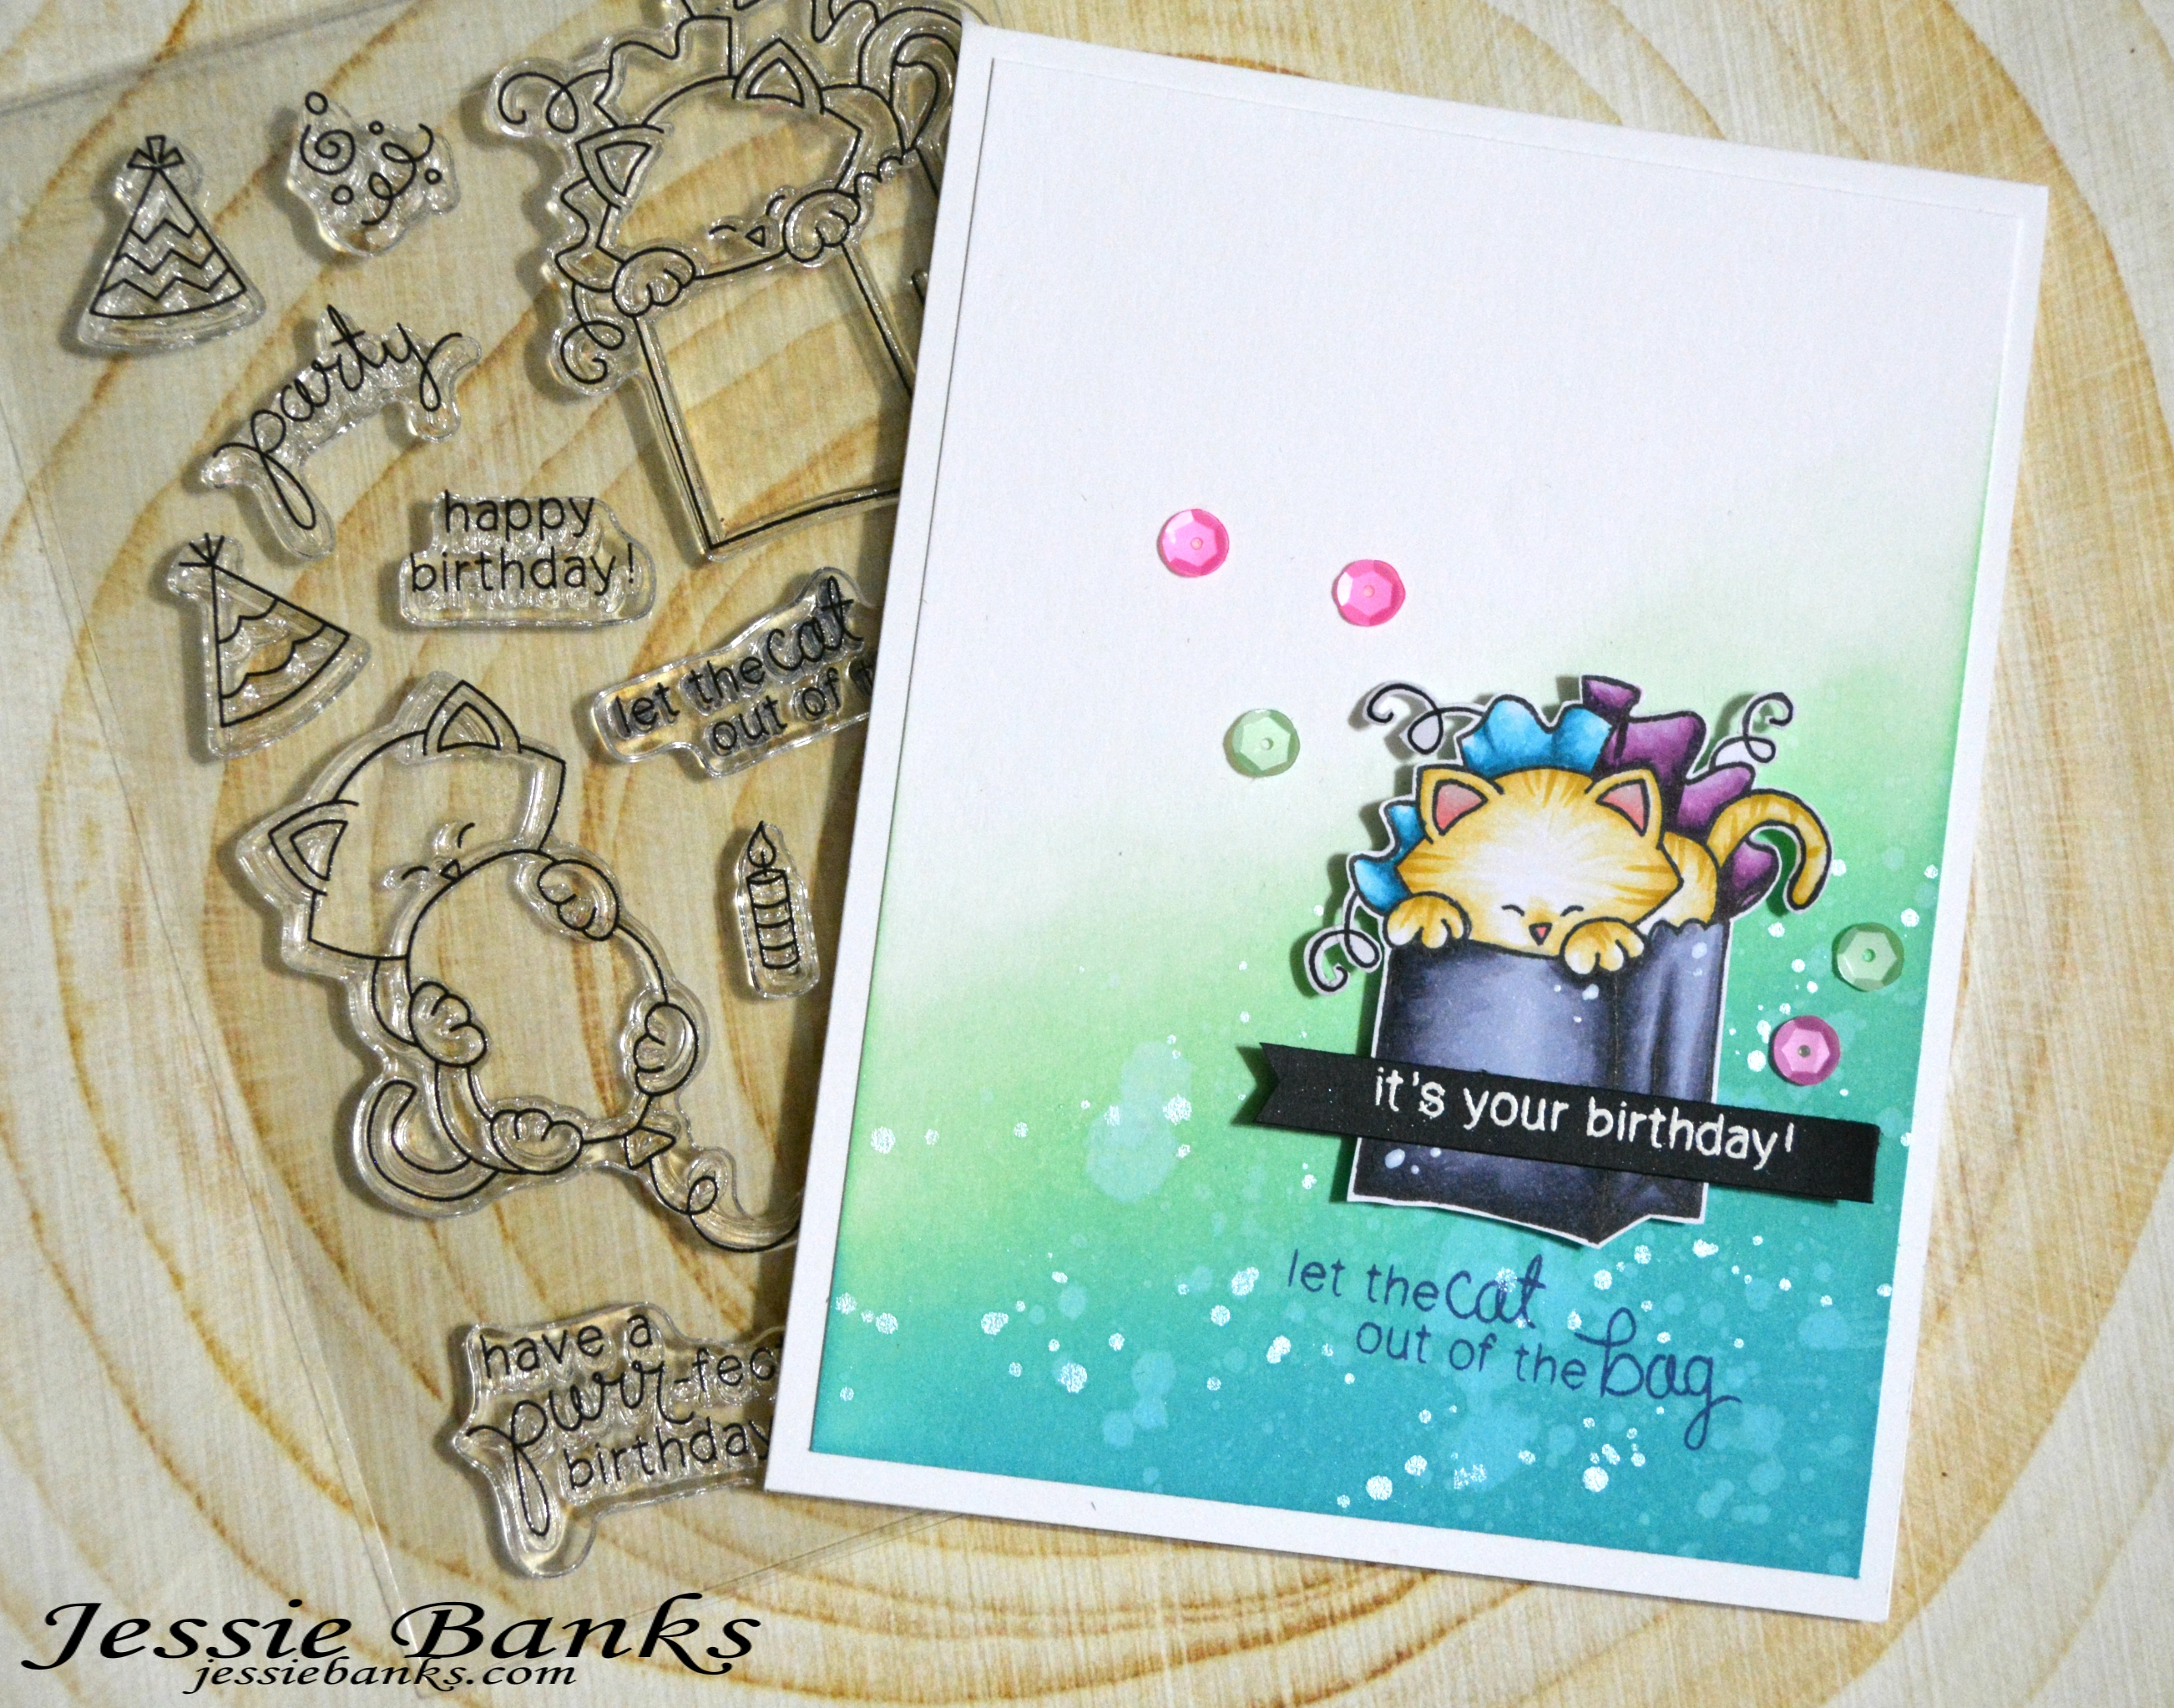 BirthdayCard by January Guest Designer Jessie Banks | Newton's Birthday Bash Stamp Set by Newton's Nook Designs #newtonsnook #handmade